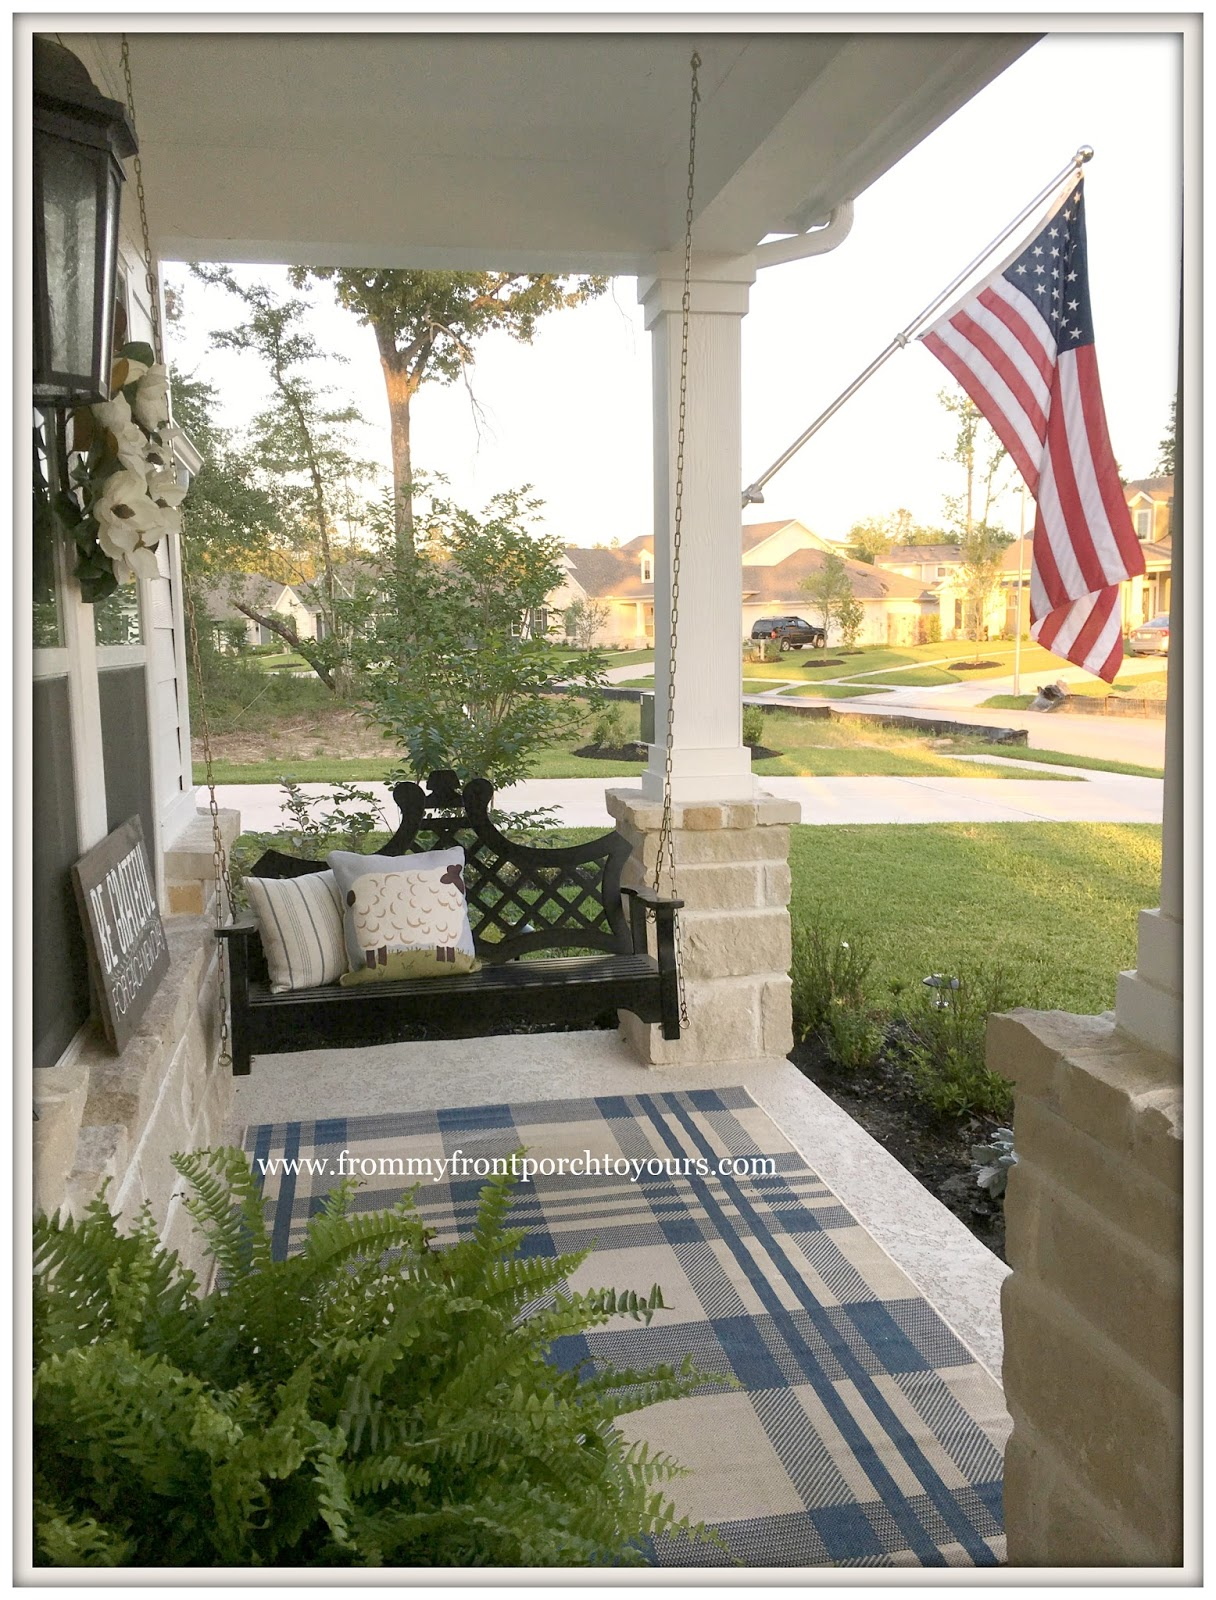 Suburban farmhouse front porch porch swing plaid outdoor rug american flag from